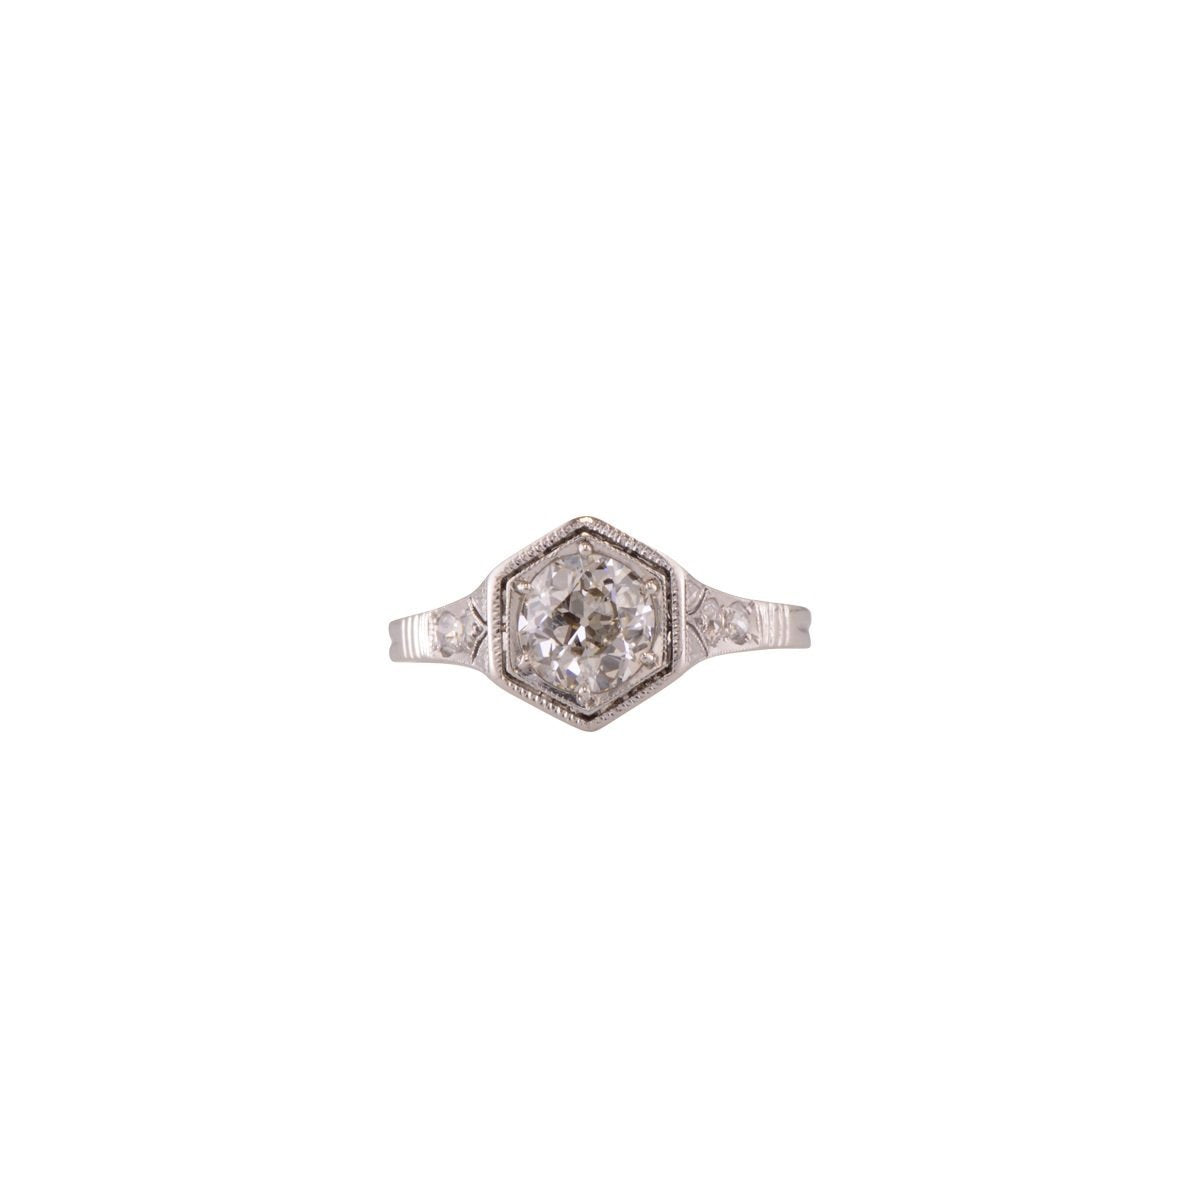 Antique platinum and diamond engagement ring 'Hawthorne'.